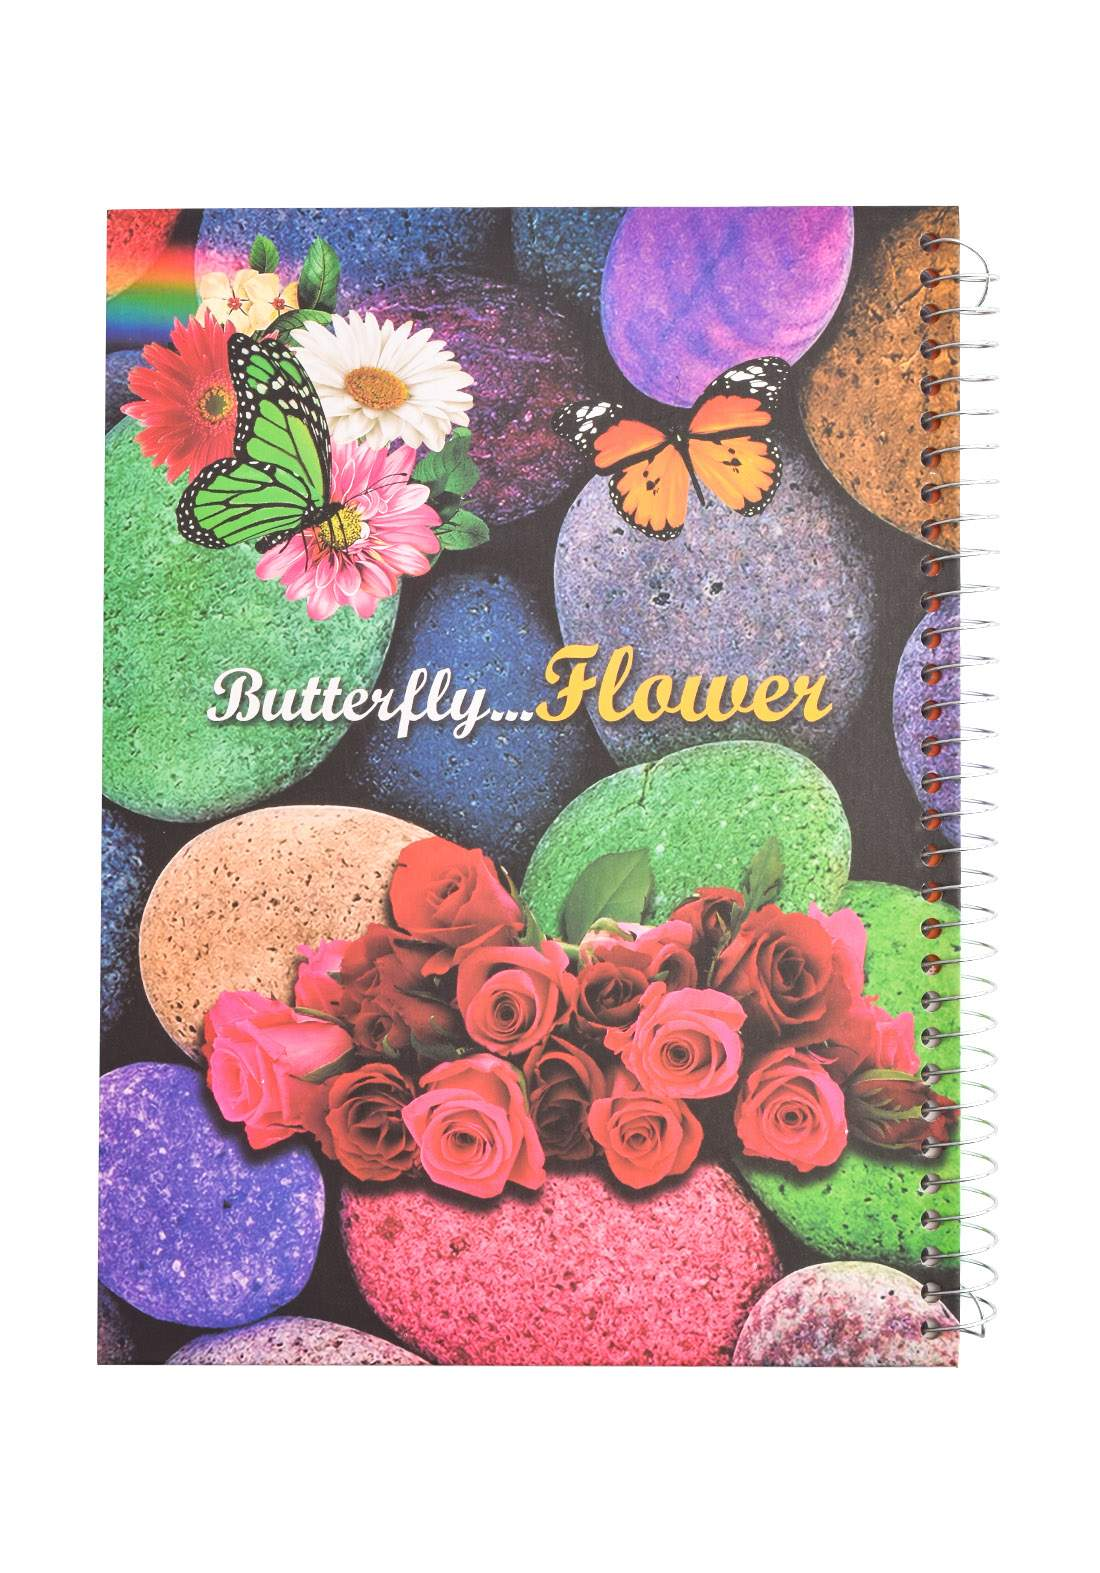 Arabic Spiral Copybook With A Drawing - Butterfly Flowers - 100 Sheets دفتر سجل 100 ورقة